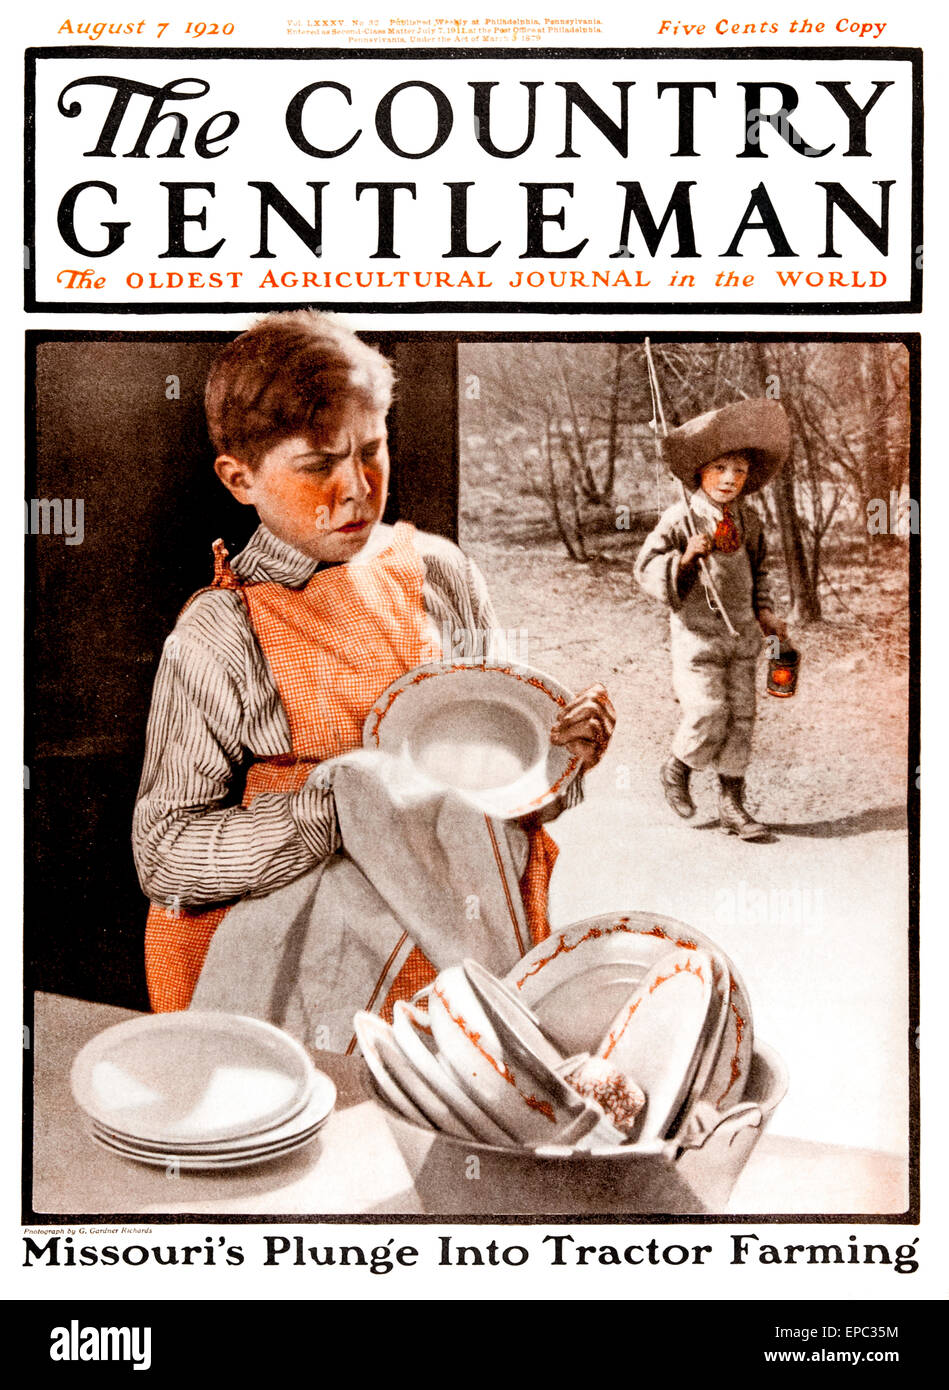 Cover of Country Gentleman agricultural magazine from the early 20th century.  . - Stock Image